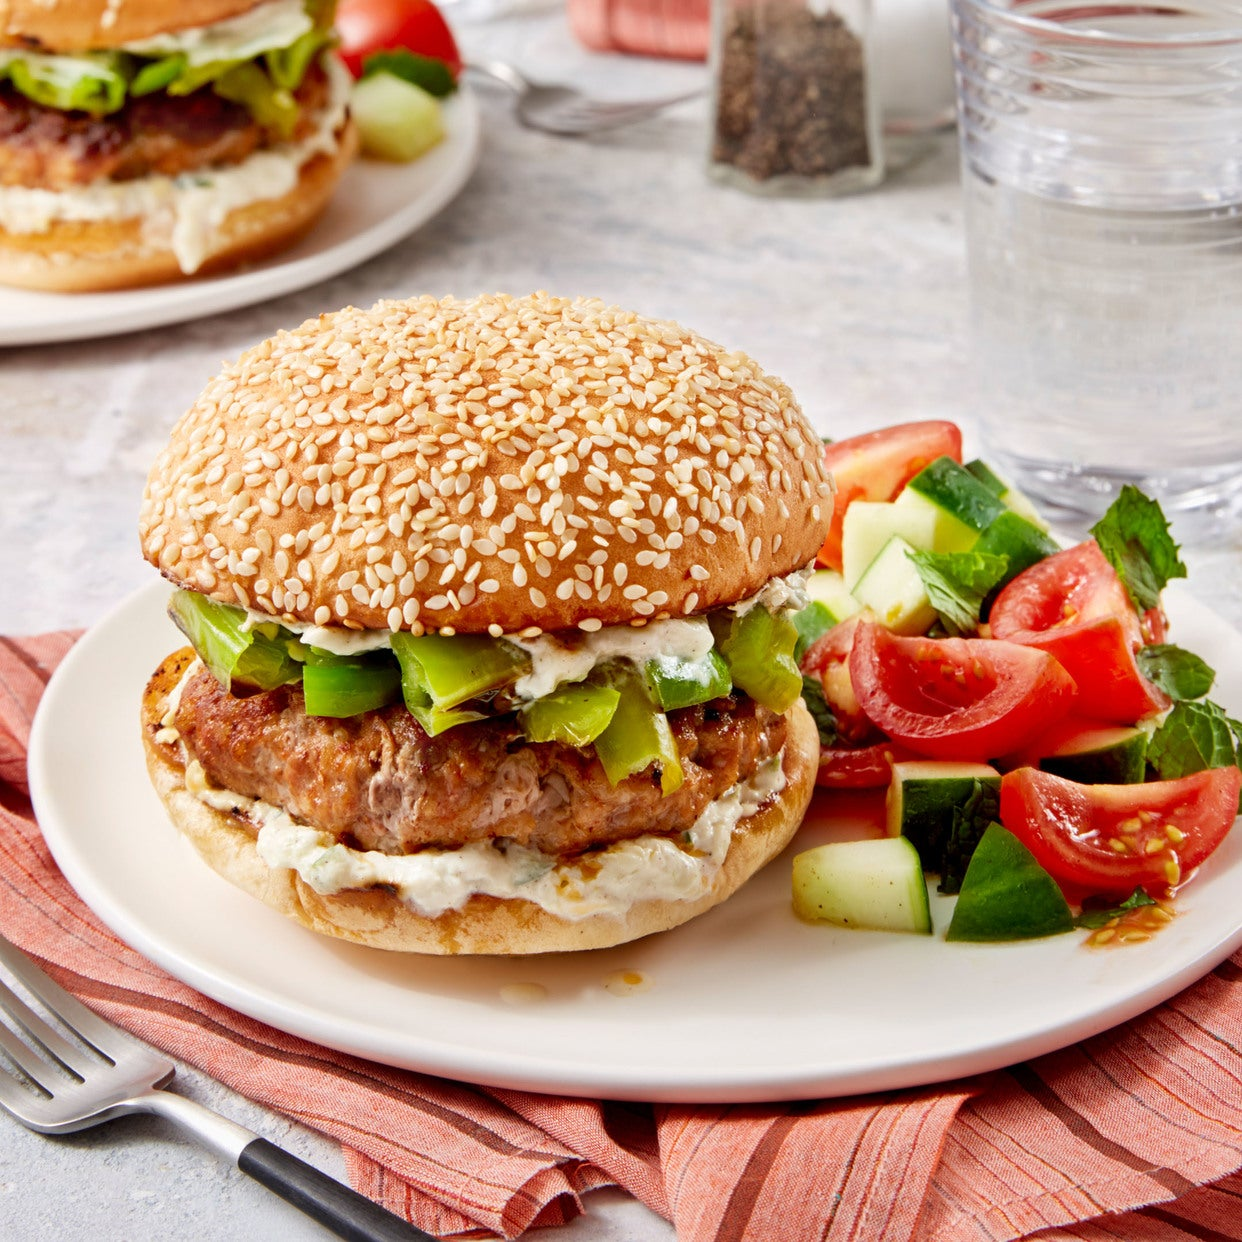 Pork Burgers & Blistered Shishito Peppers with Cucumber & Heritage Globe Tomato Salad